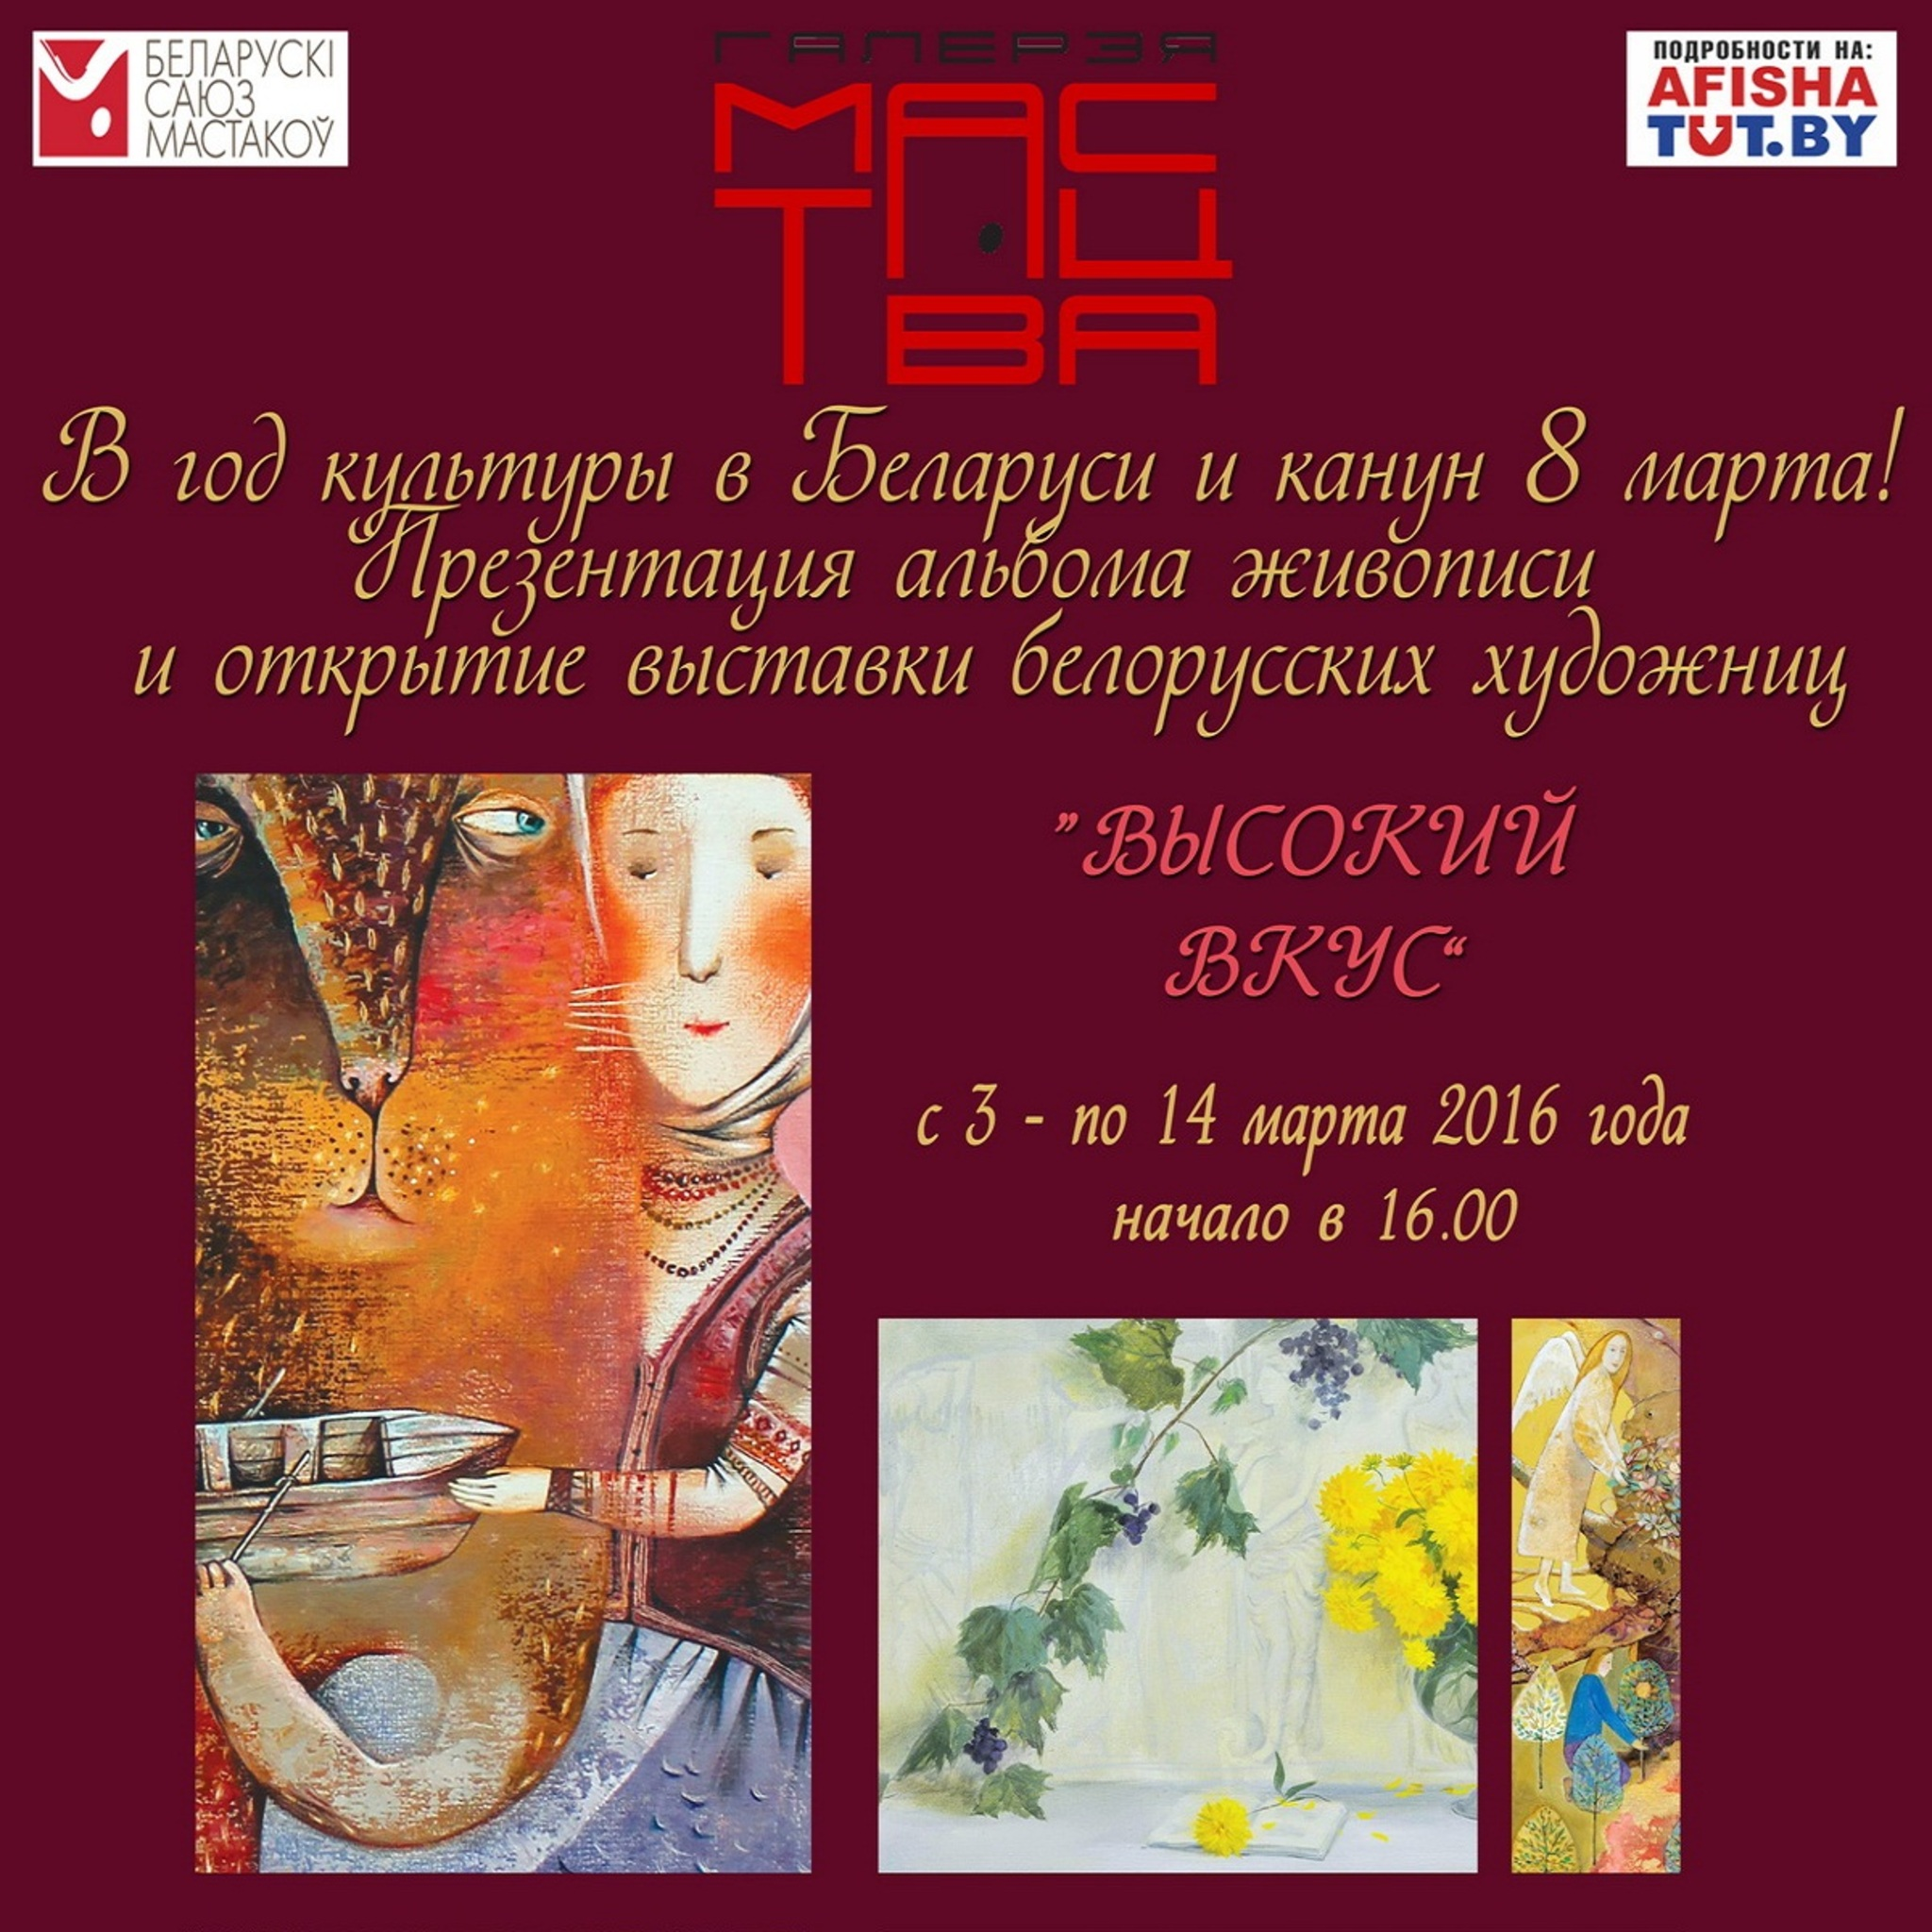 Painting exhibition of Belarusian artists high taste